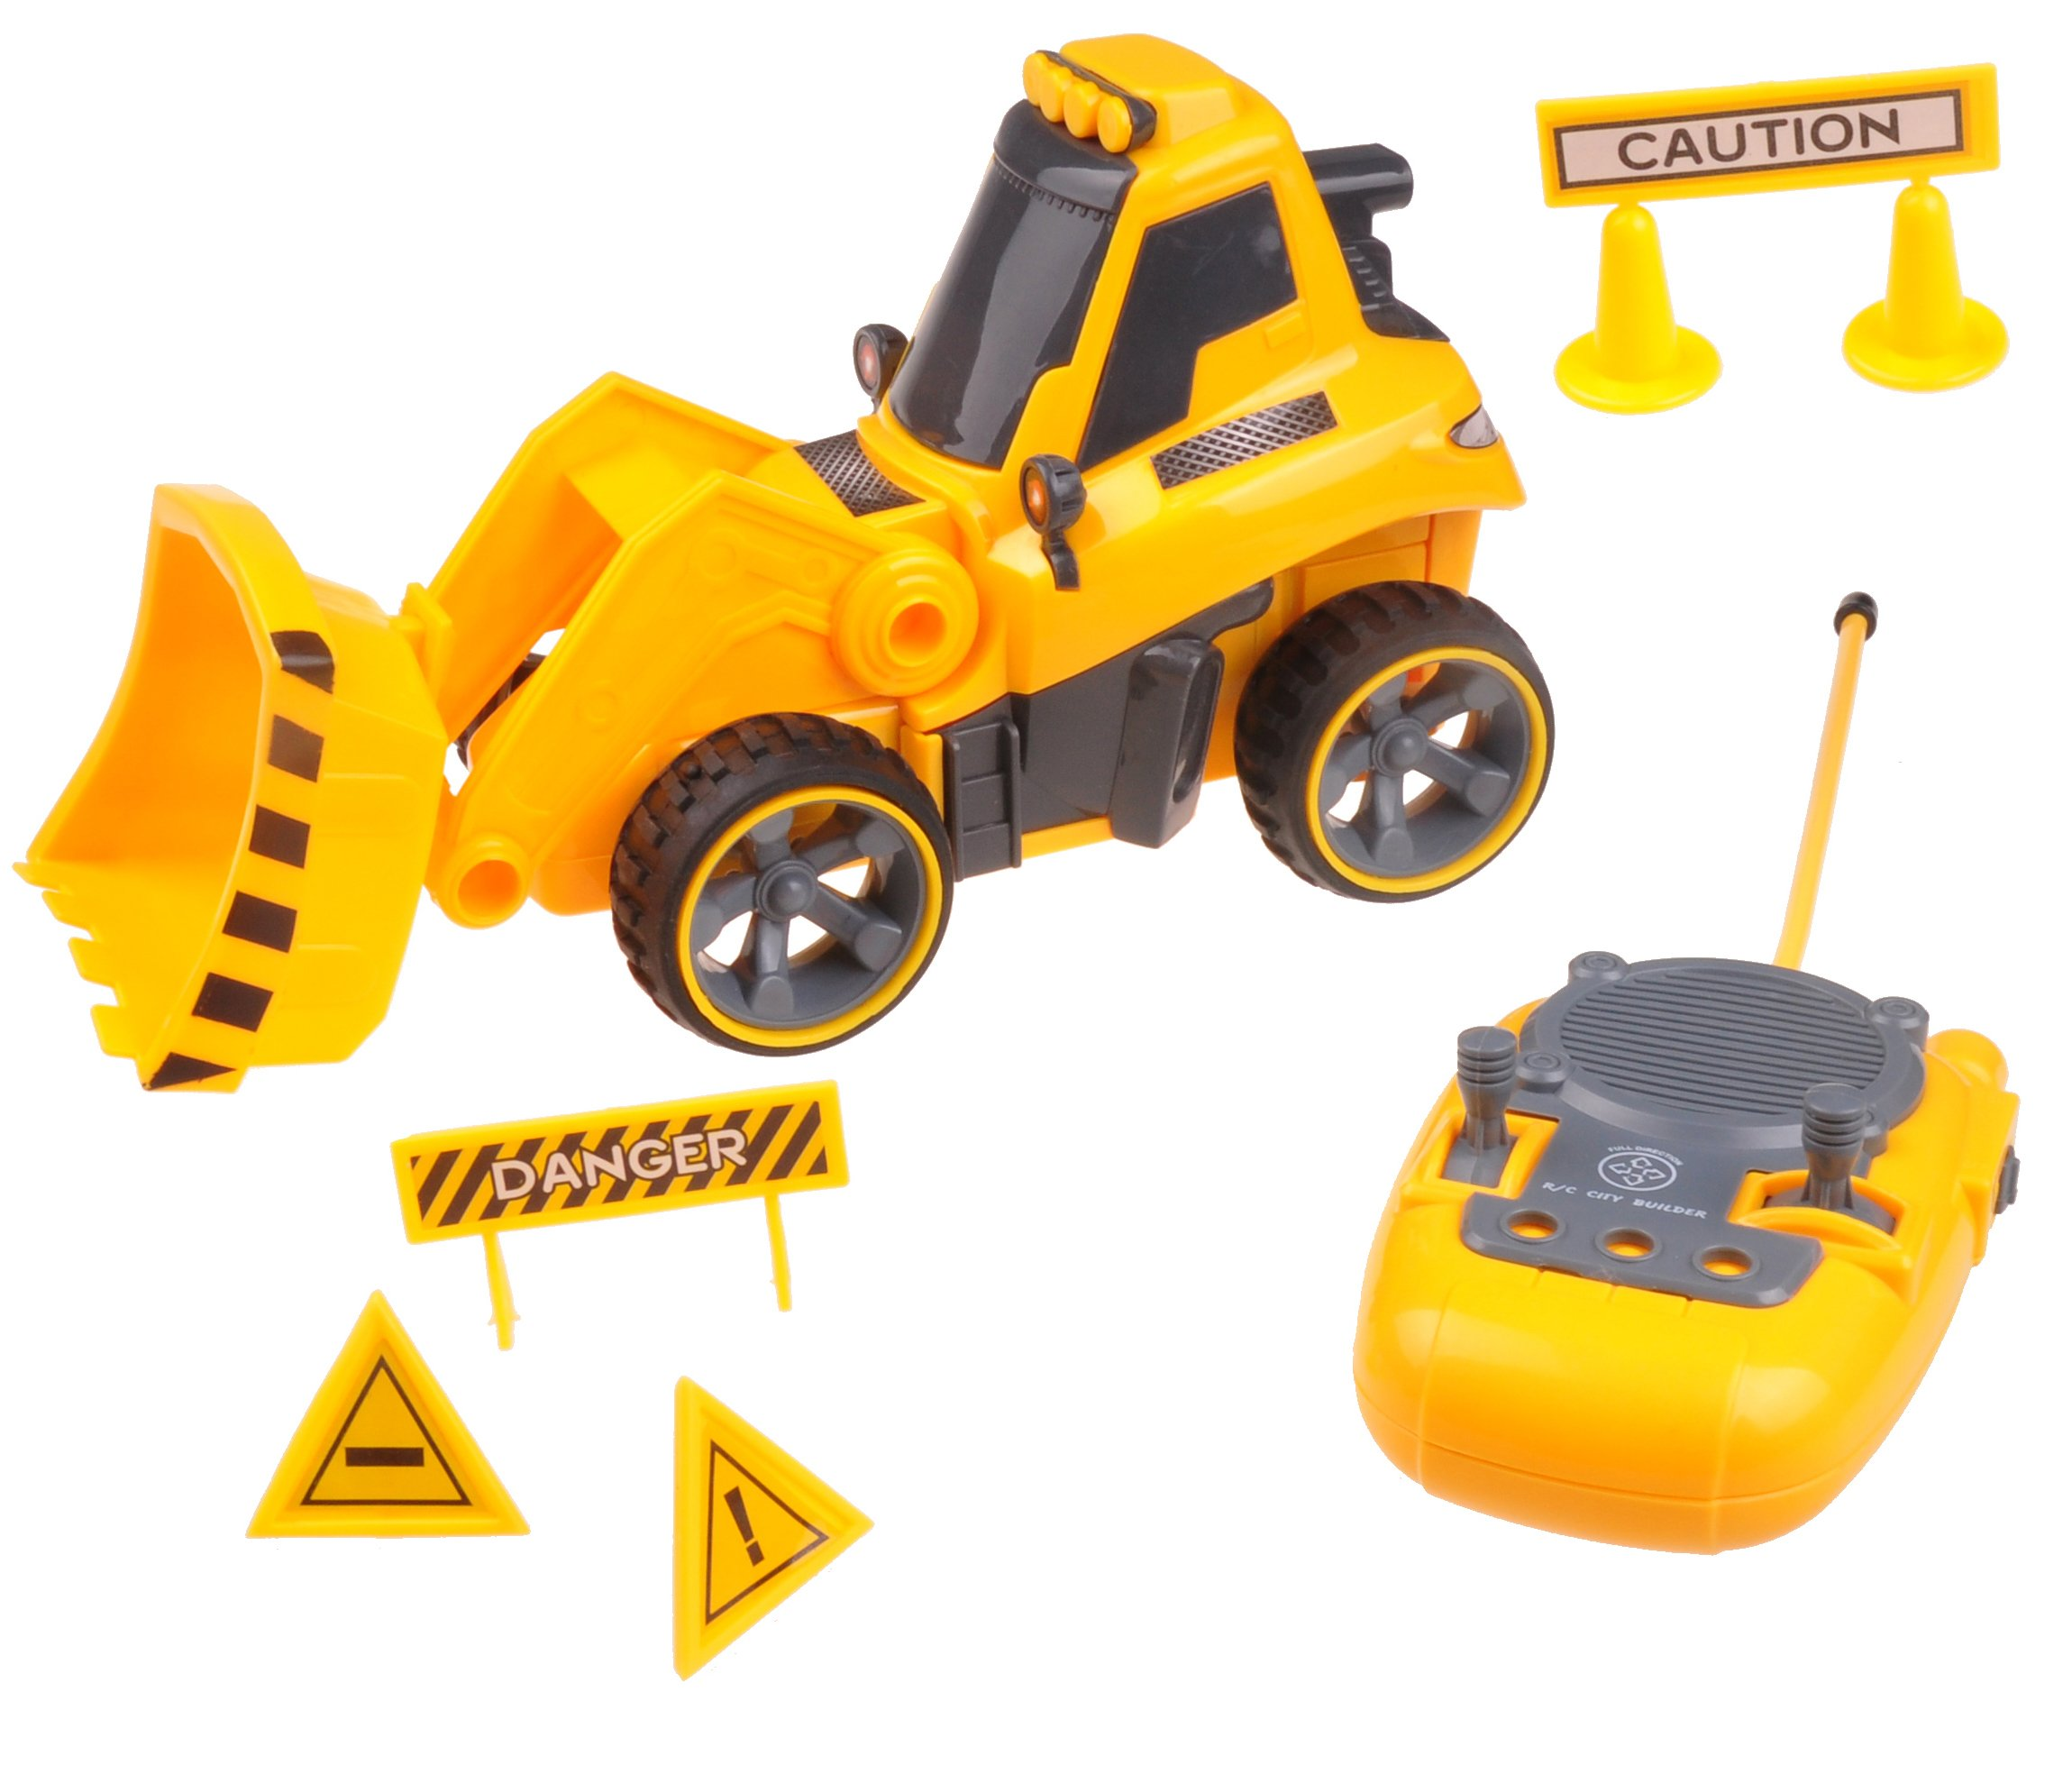 Remote Control Digger Truck Toy For 3,4,5,6 Year Old Boys & Girls TG659 – RC Digger Toy With Full Directional Control and Sounds Effects By ThinkGizmos (Trademark Protected)